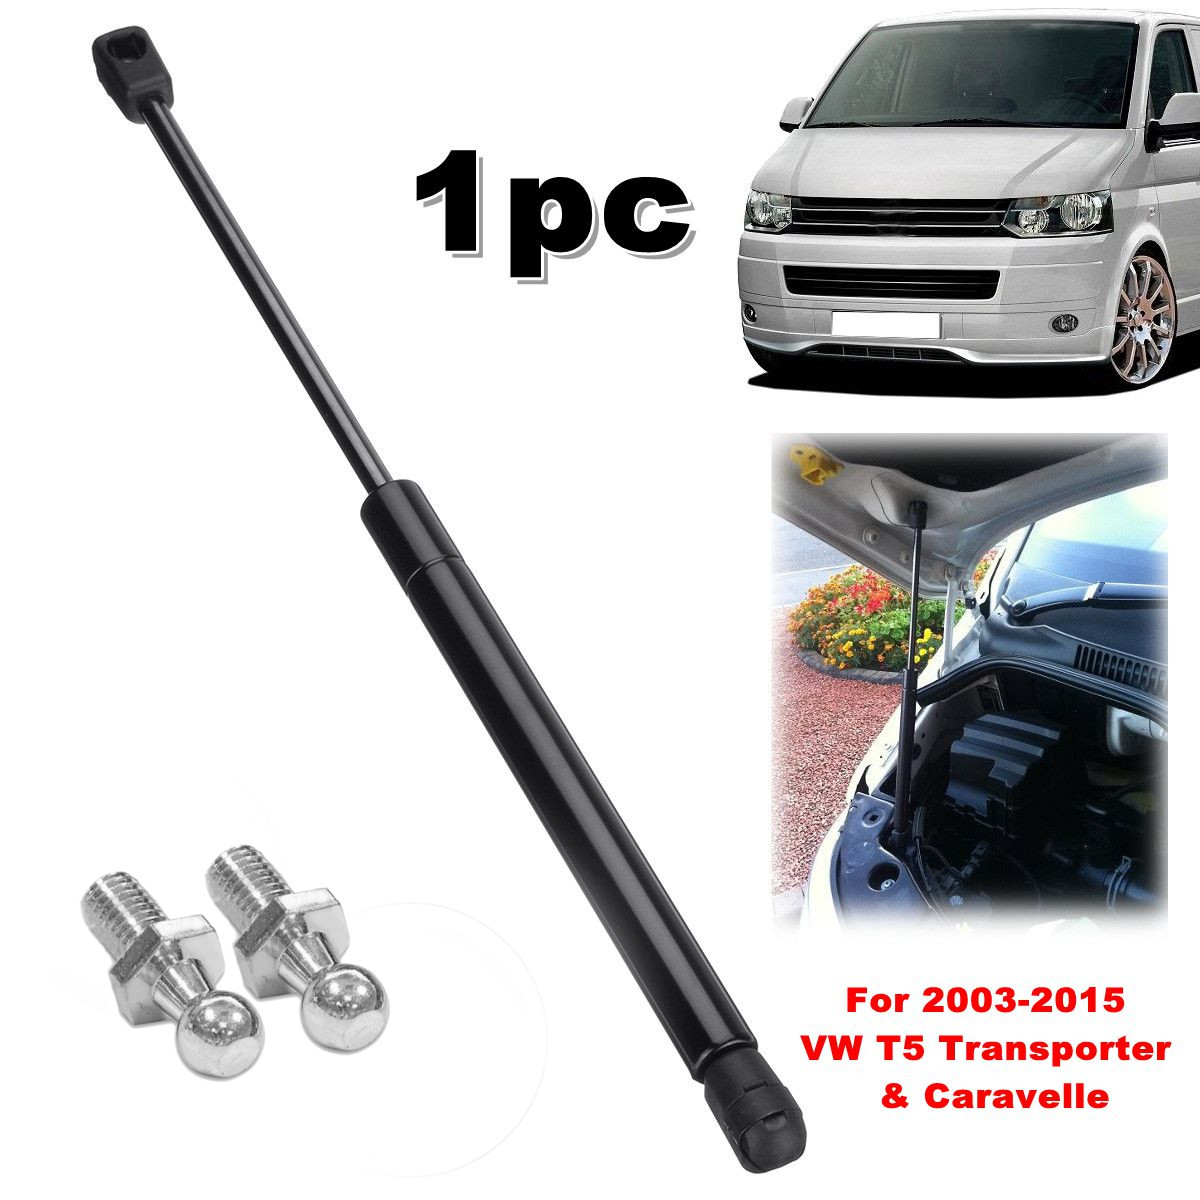 1Pc Front Bonnet Hood Support Gas Strut 7E0823359 For Volkswagen VW T5 Transporter Caravelle 2003 2004 2005 2006 2007 - 2015